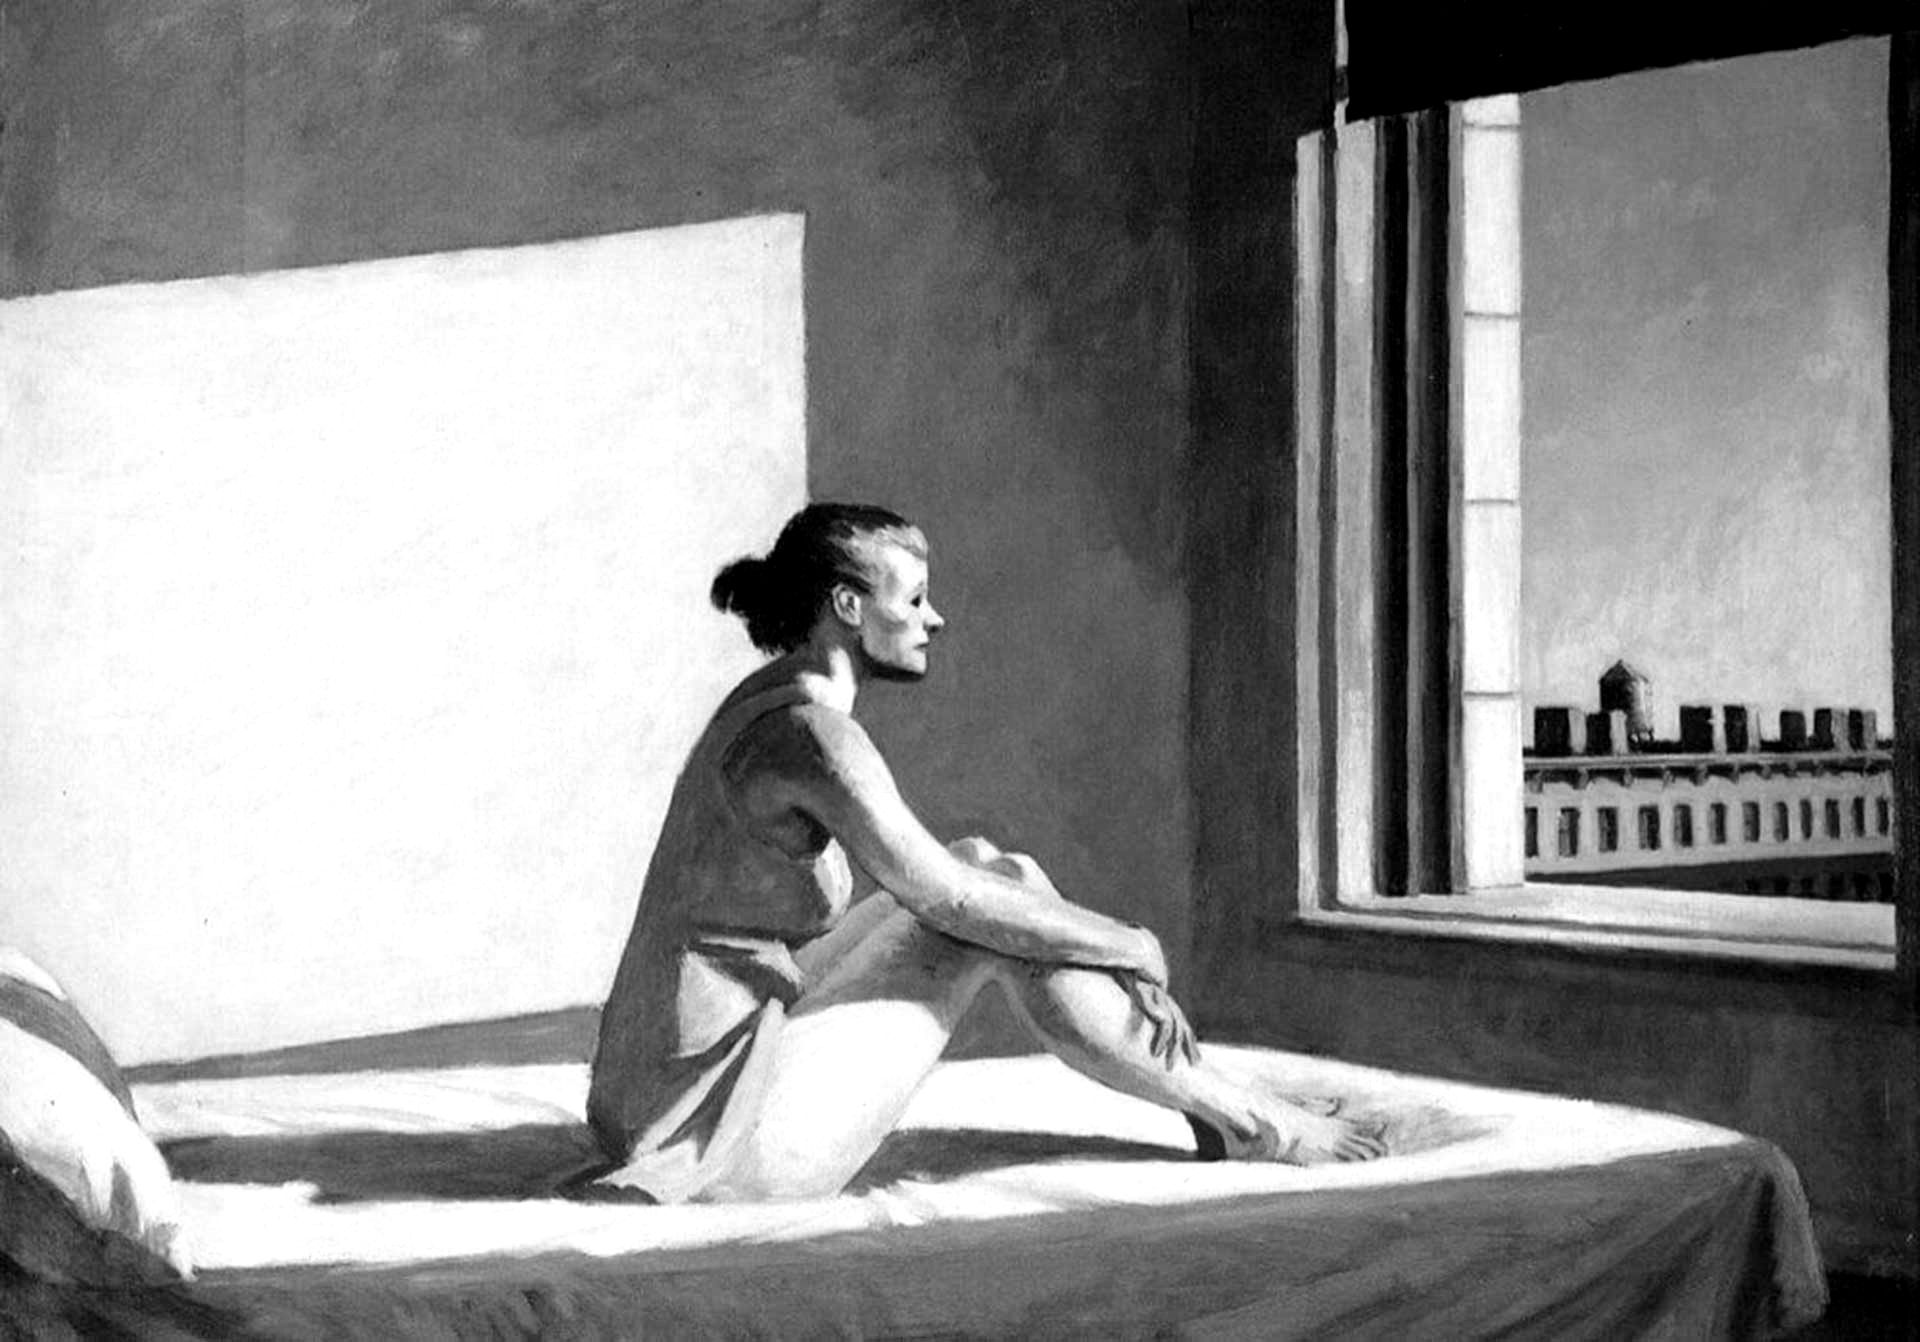 Edward Hopper - Sol de la mañana - copia